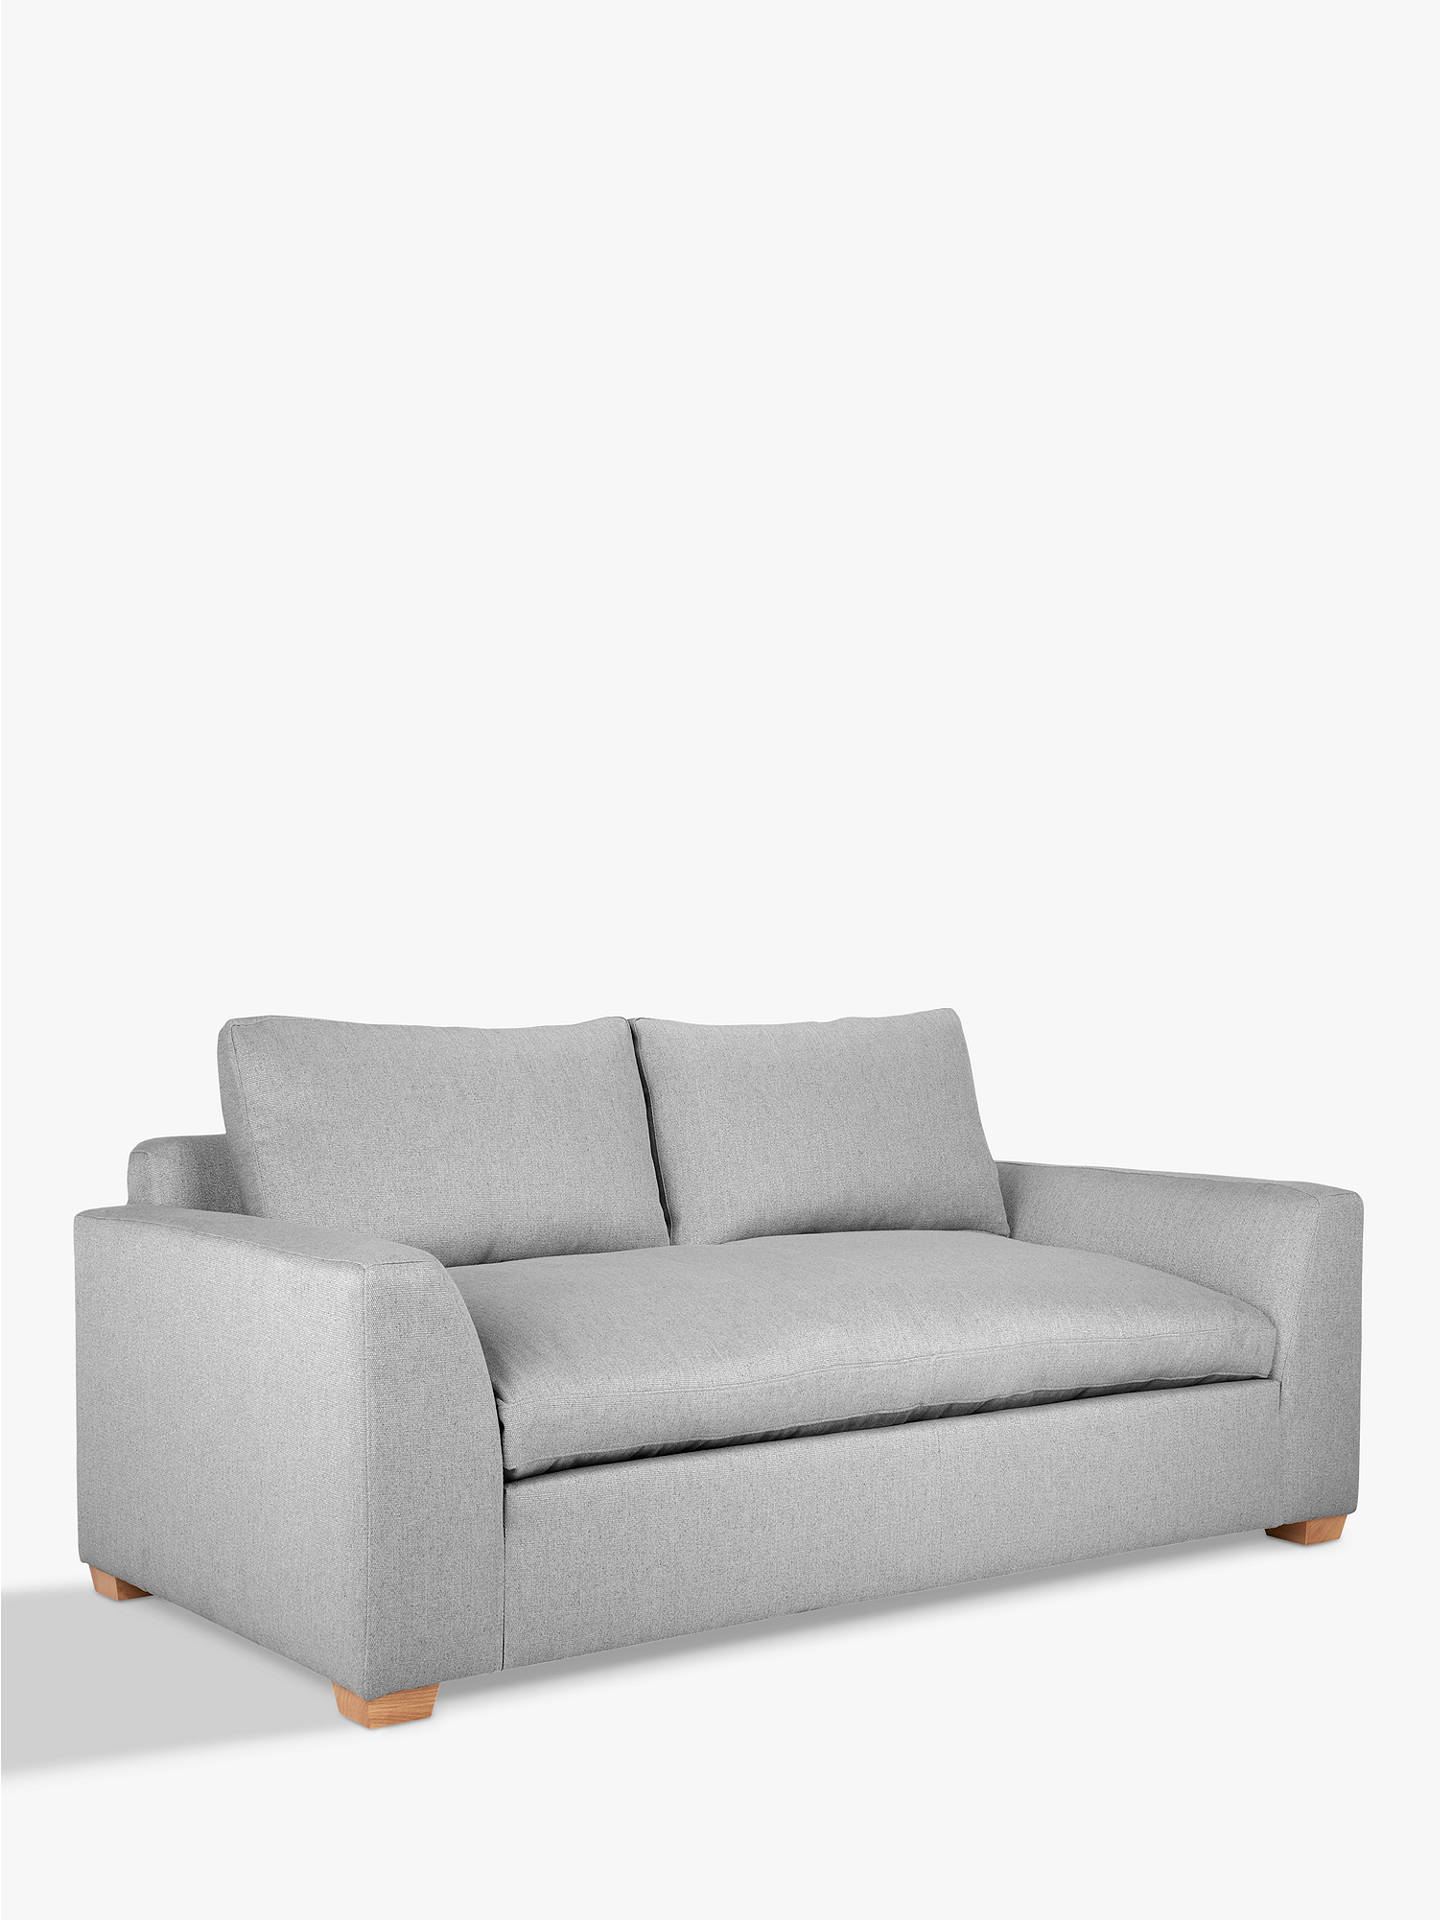 Buy John Lewis & Partners Tortona Medium 2 Seater Sofa Online at johnlewis.com